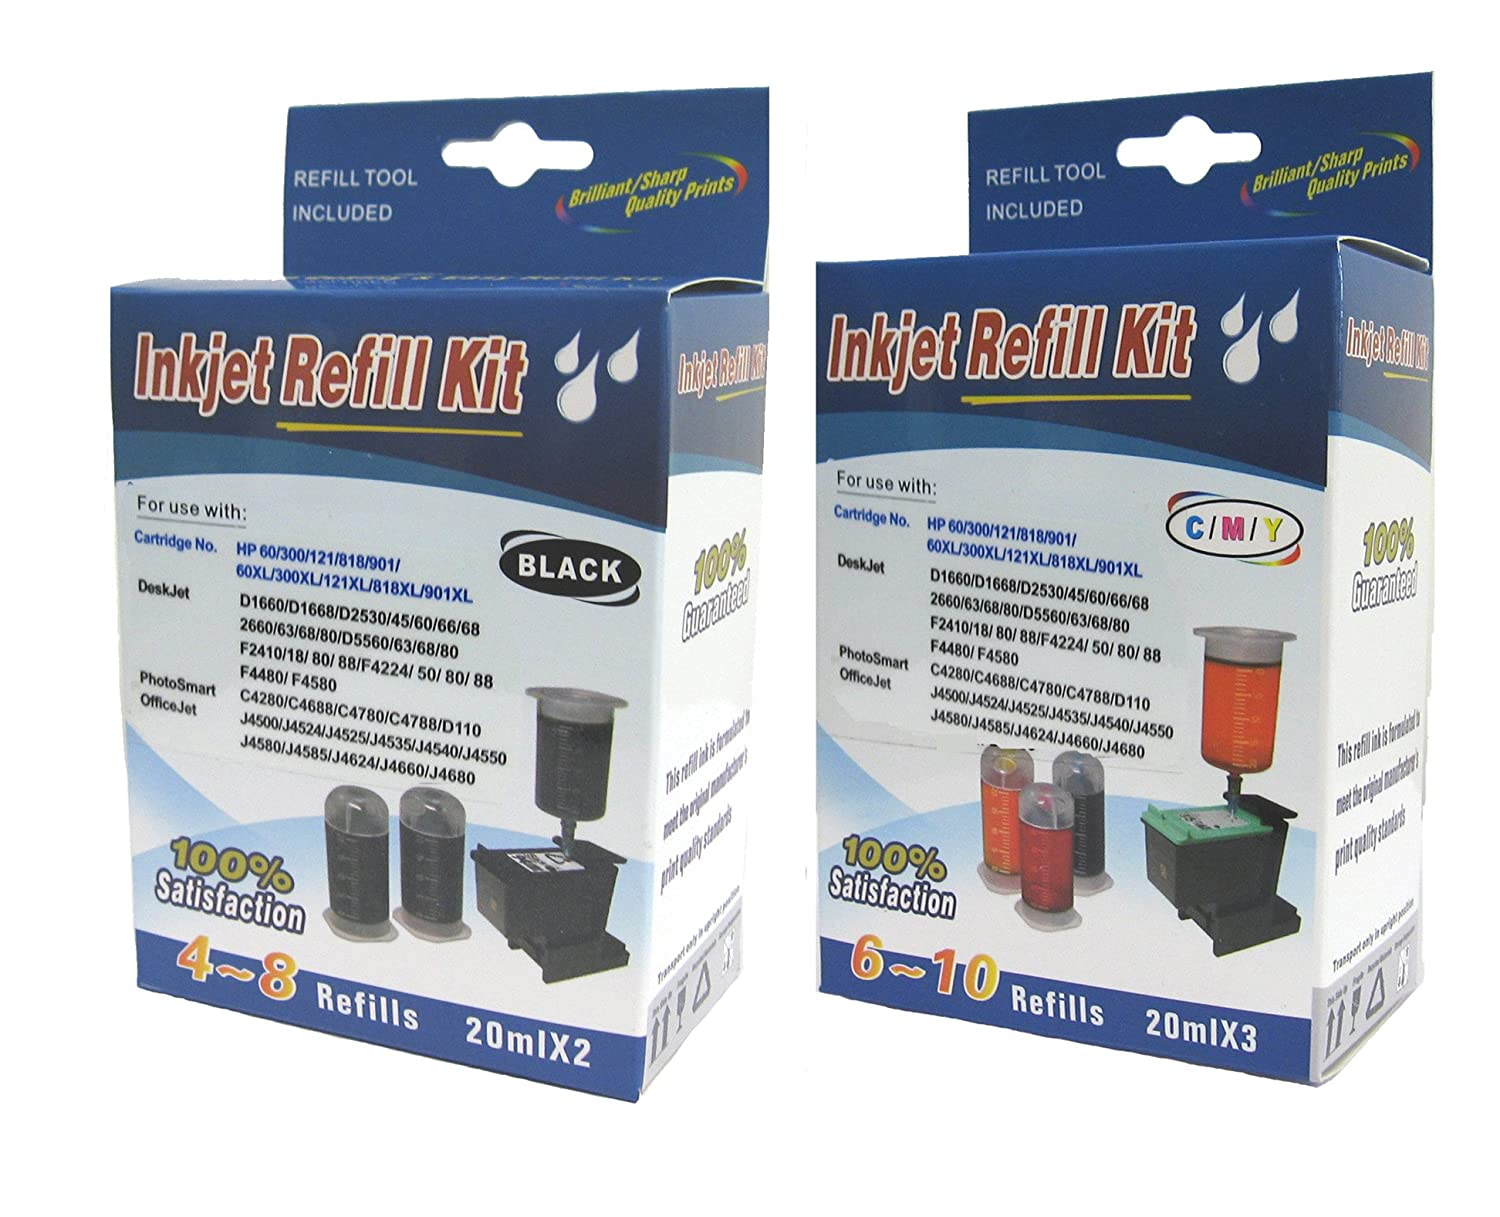 Amazon.com: Cartridge refill kit for HP 62 HP63 HP62XL HP63XL ink cartridges  BK & C,M,Y: Office Products